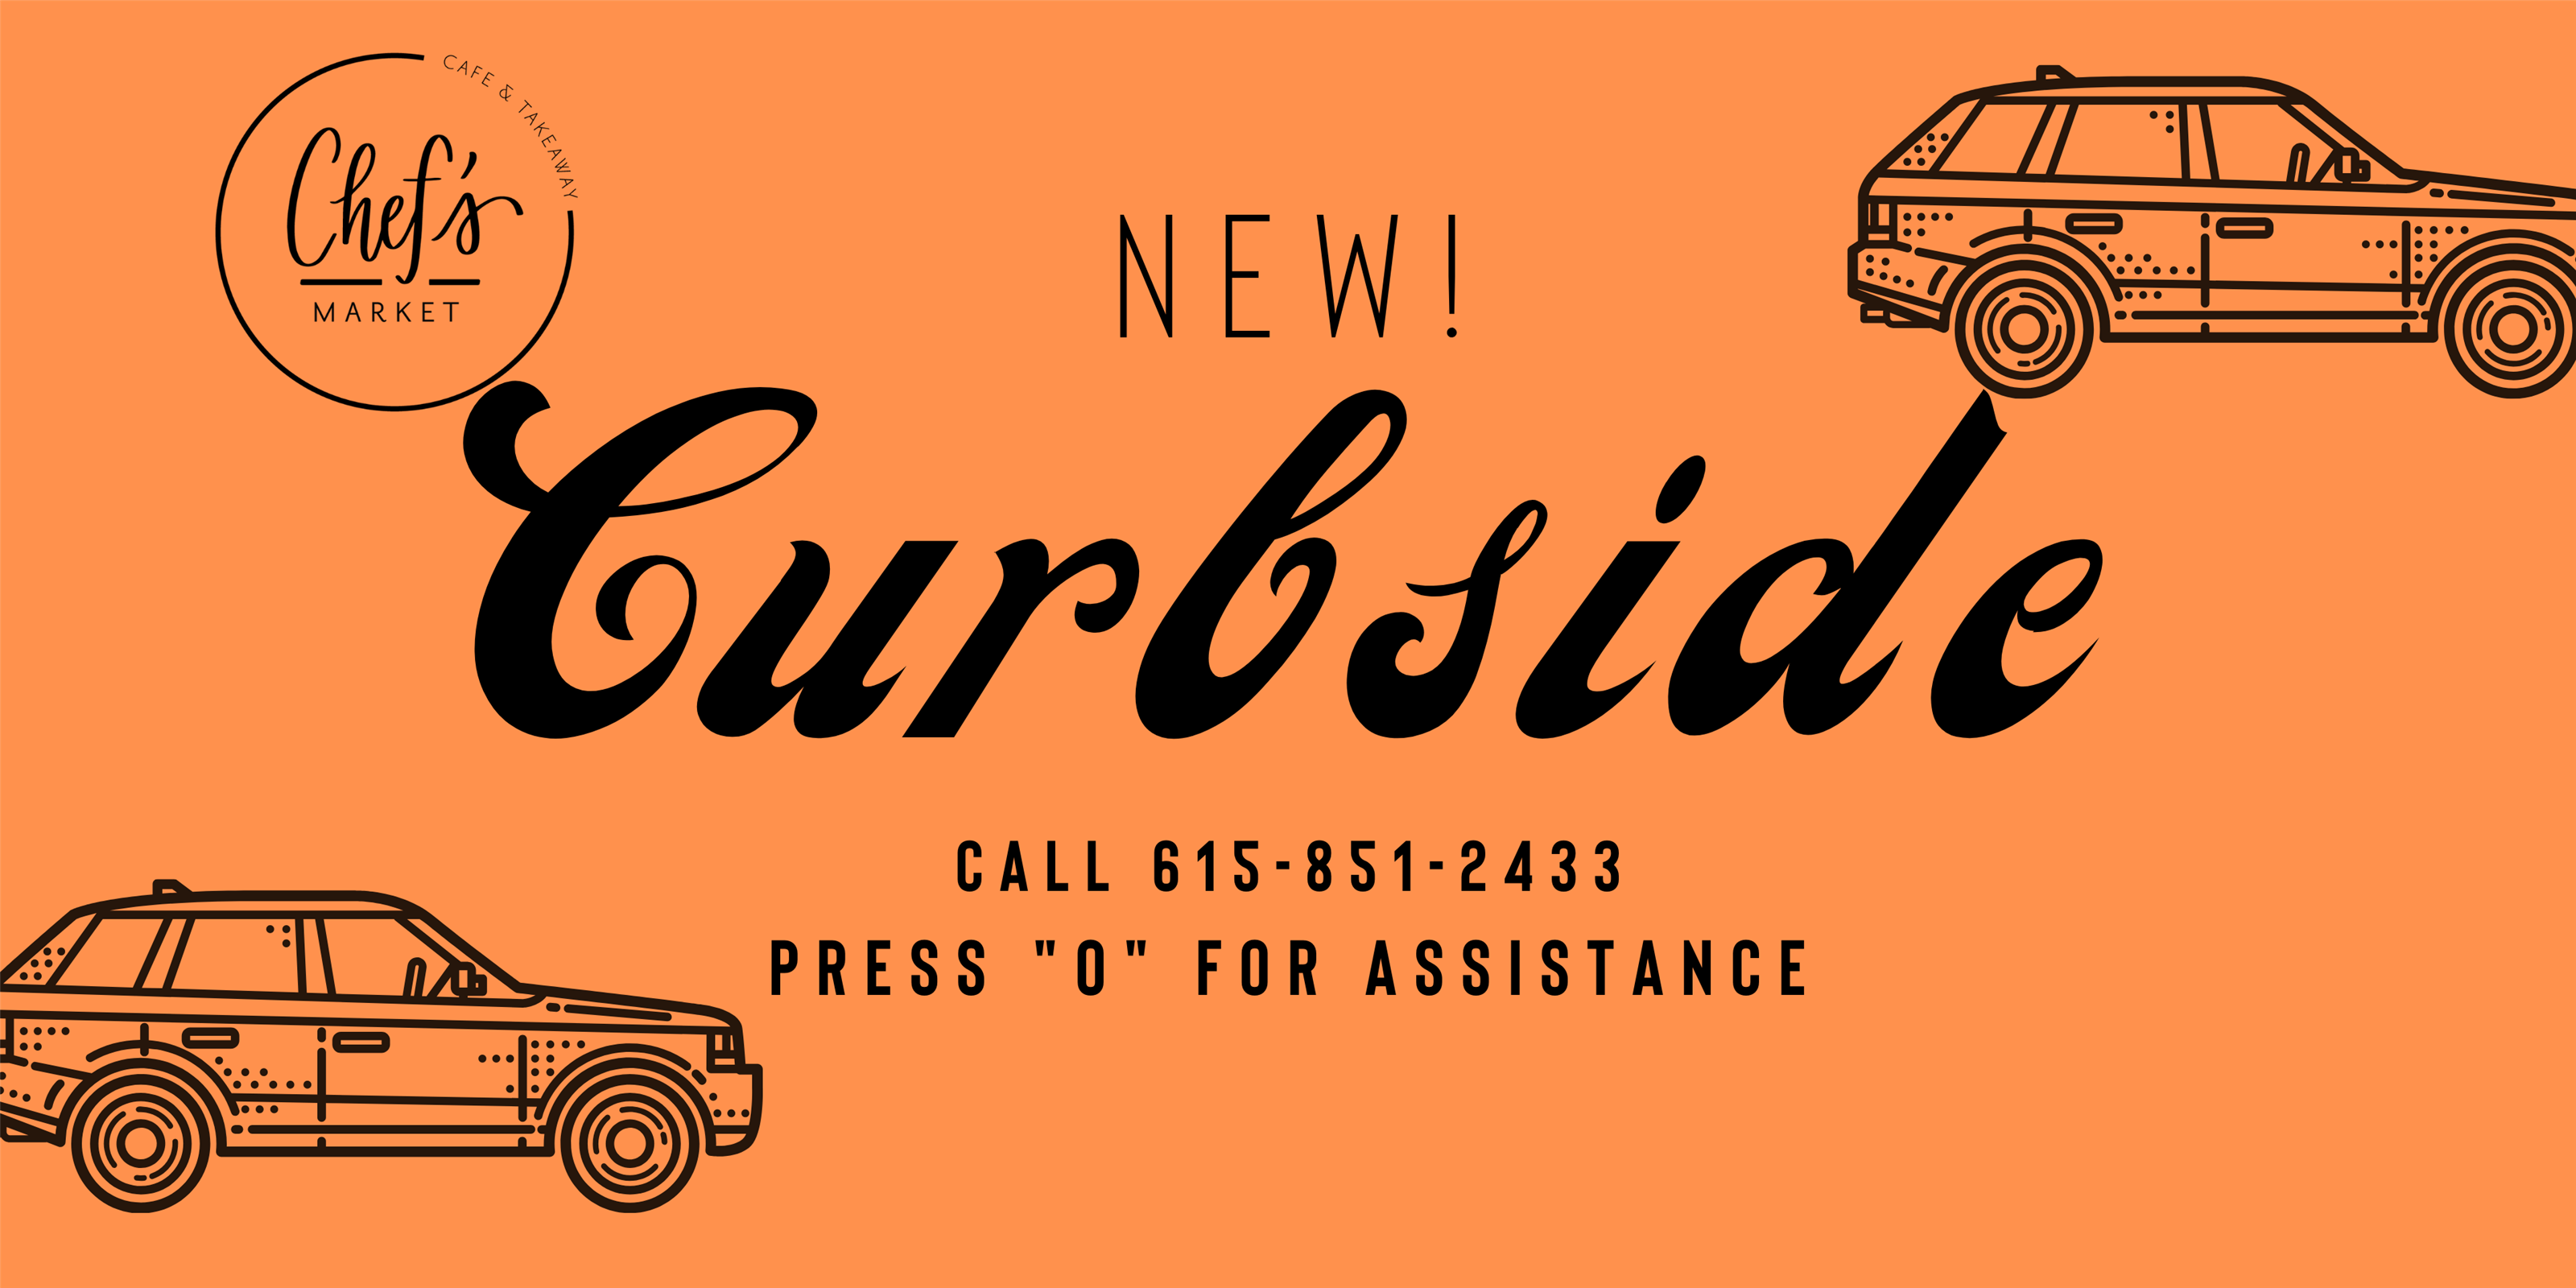 "new! curbside call 615-851-2433 press ""0"" for assistance"